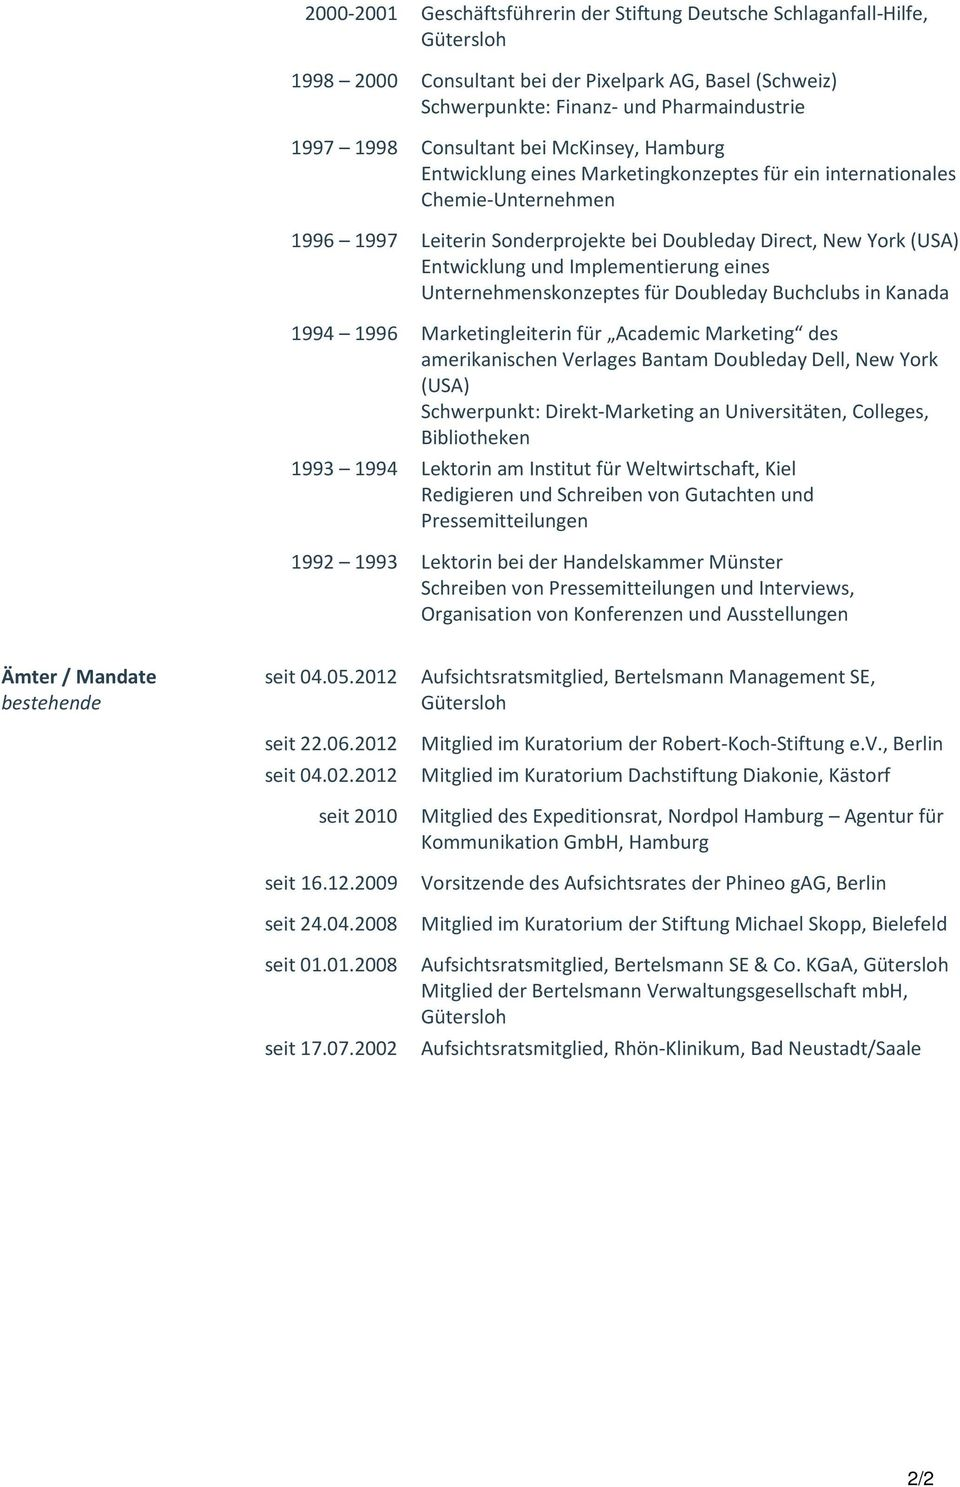 Implementierung eines Unternehmenskonzeptes für Doubleday Buchclubs in Kanada 1994 1996 Marketingleiterin für Academic Marketing des amerikanischen Verlages Bantam Doubleday Dell, New York (USA)